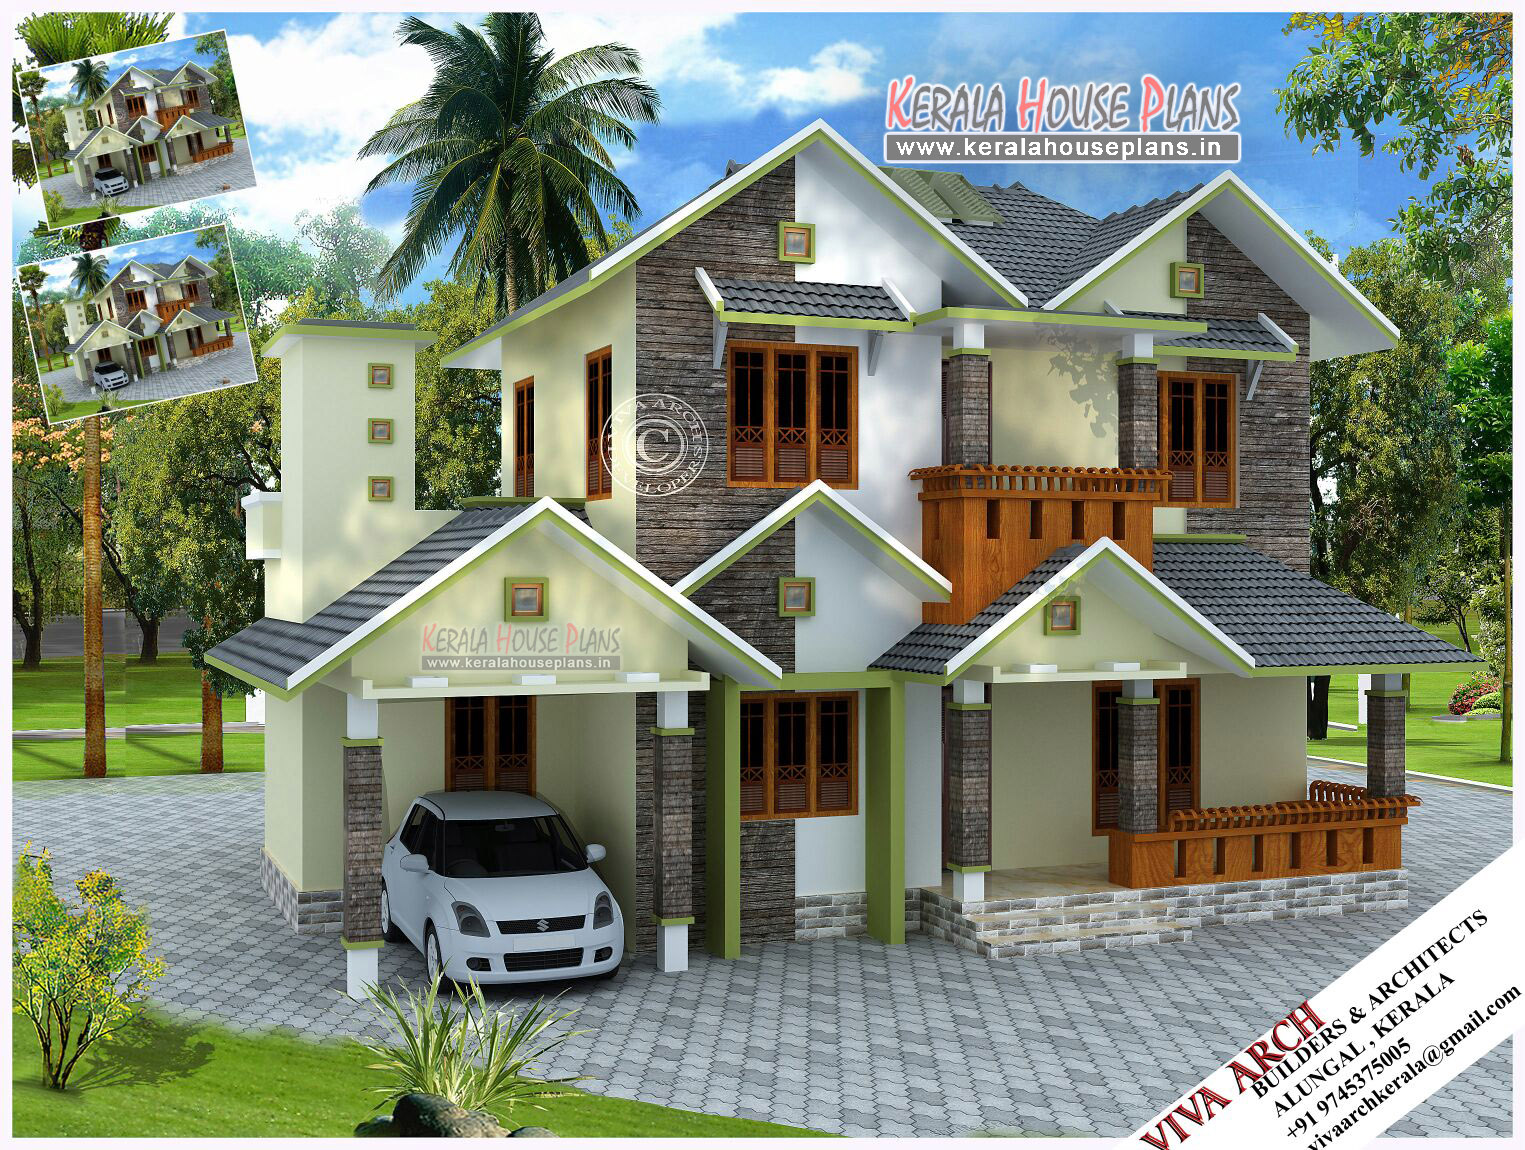 Village House Plans Designs Home Design And Style